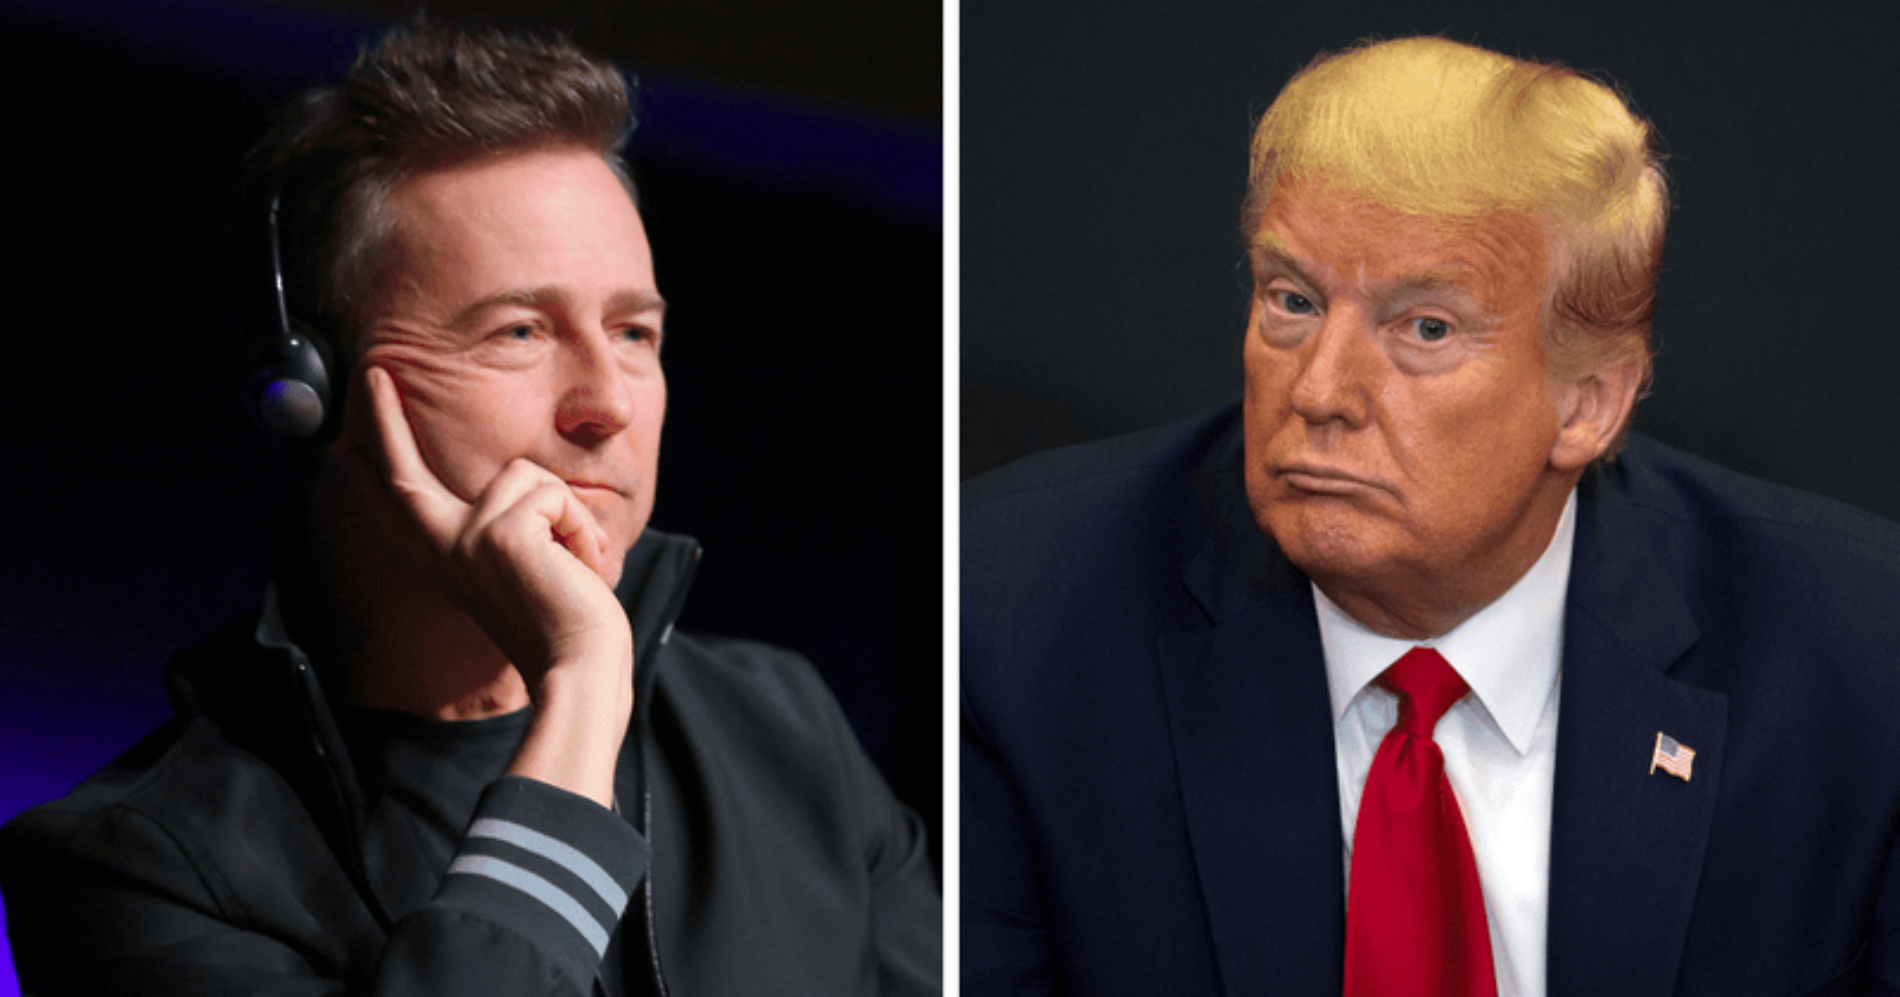 """""""He's A Whiny, Sulky, Petulant, Grinchy, Vindictive Super-soft B***h!"""" Actor Edward Norton posts a scathing attack on Donald Trump"""